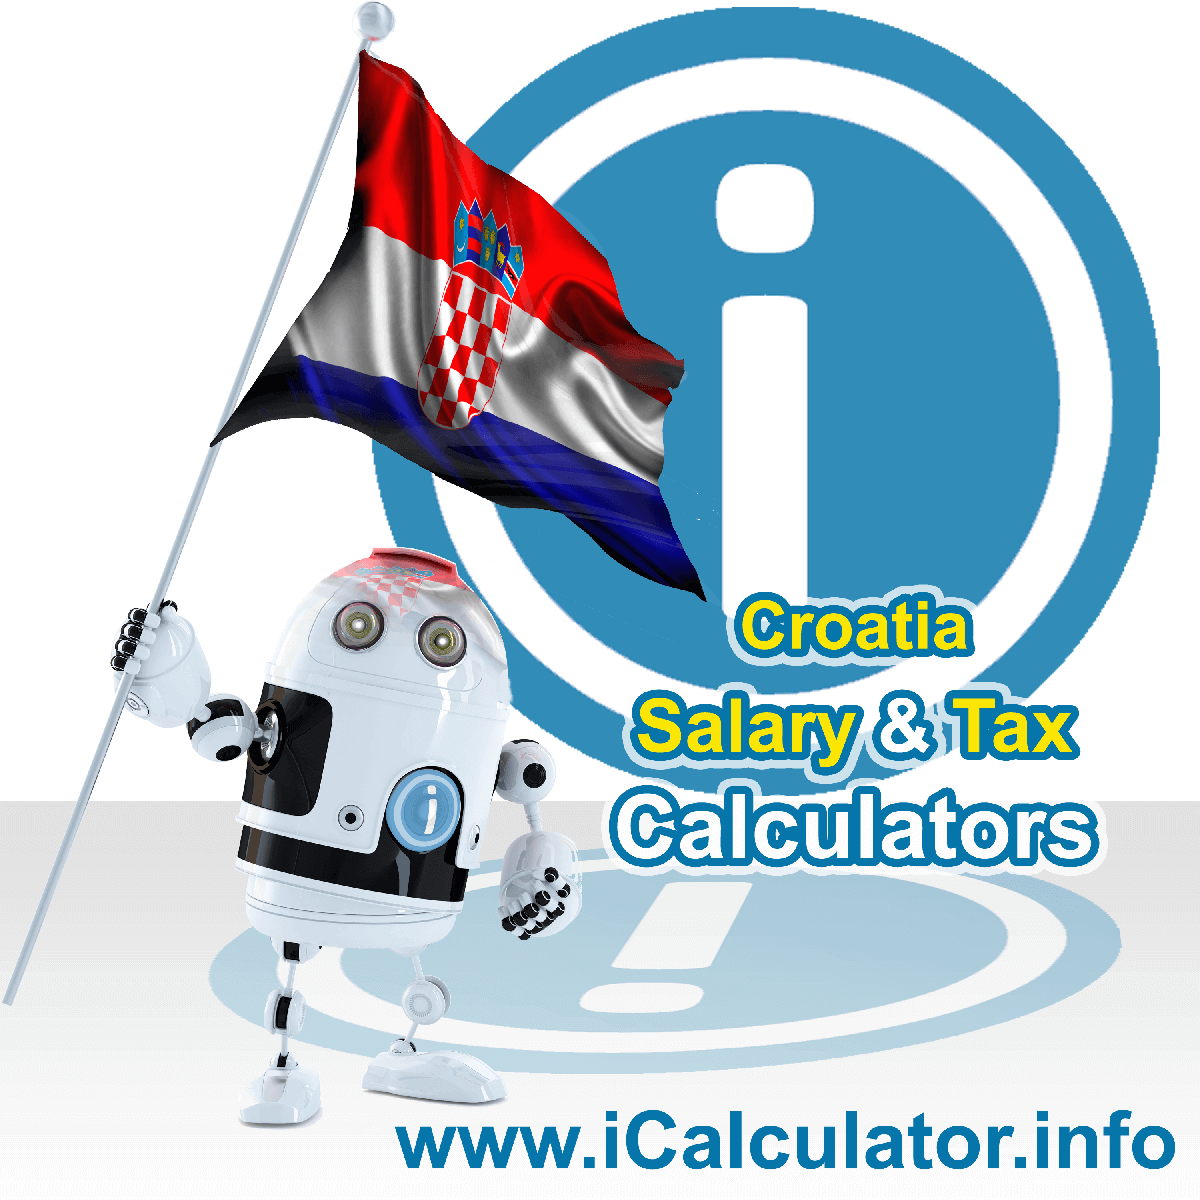 Croatia Tax Calculator. This image shows the Croatia flag and information relating to the tax formula for the Croatia Salary Calculator